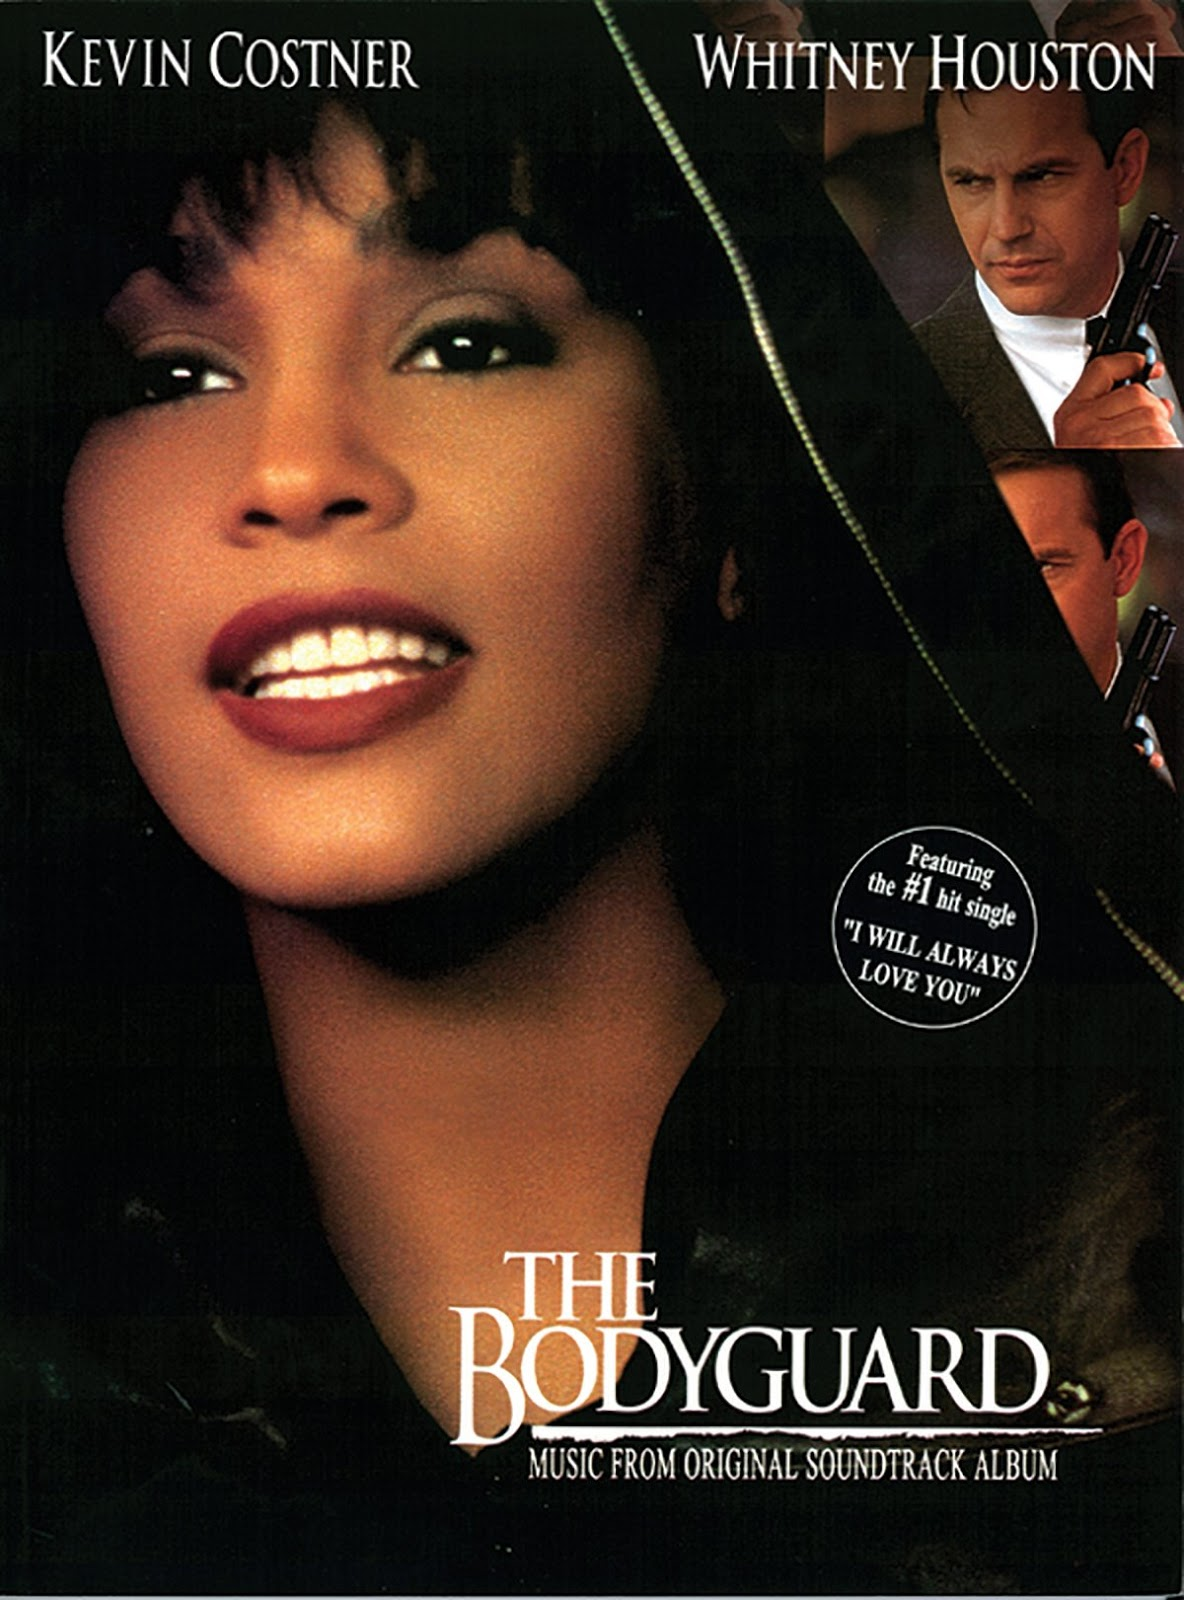 25th Anniversary of The Bodyguard to be Celebrated With ...